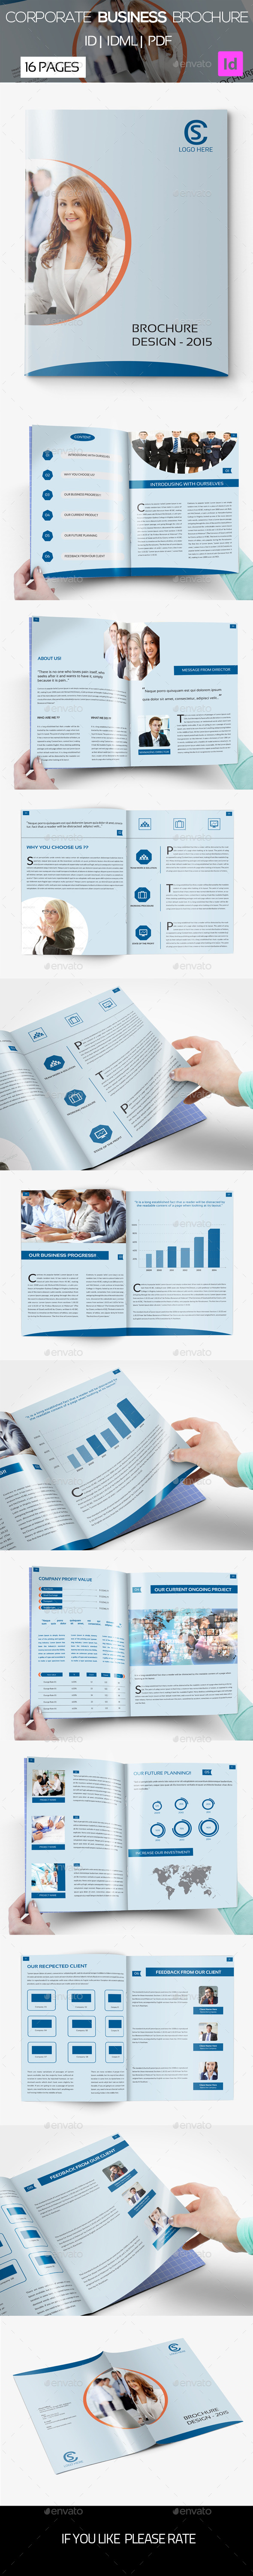 GraphicRiver 16 pages Corporate Business Brochure 02 9967484